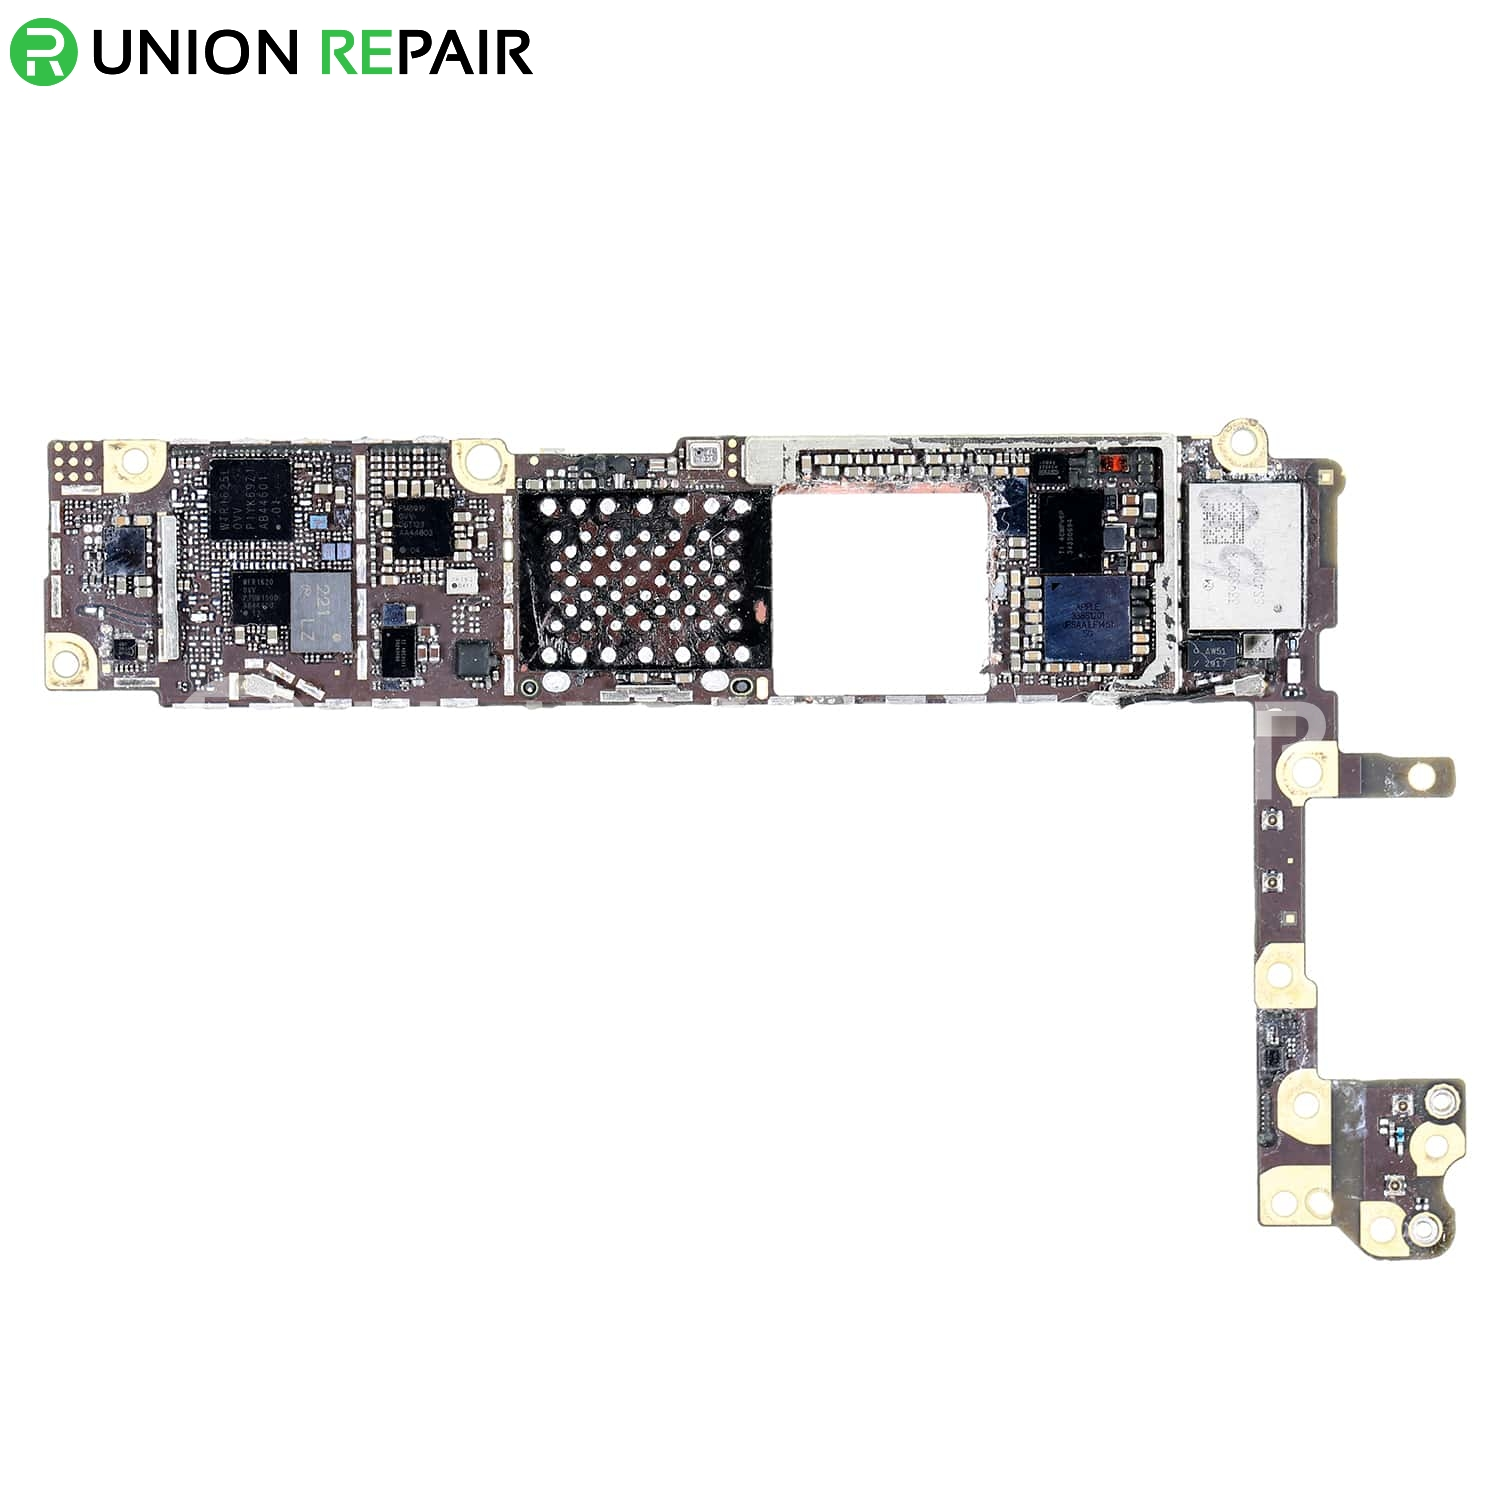 Broken Practice Board for iPhone Repair without CPU without Nand (5PCS/Set), Type: For iPhone 6G